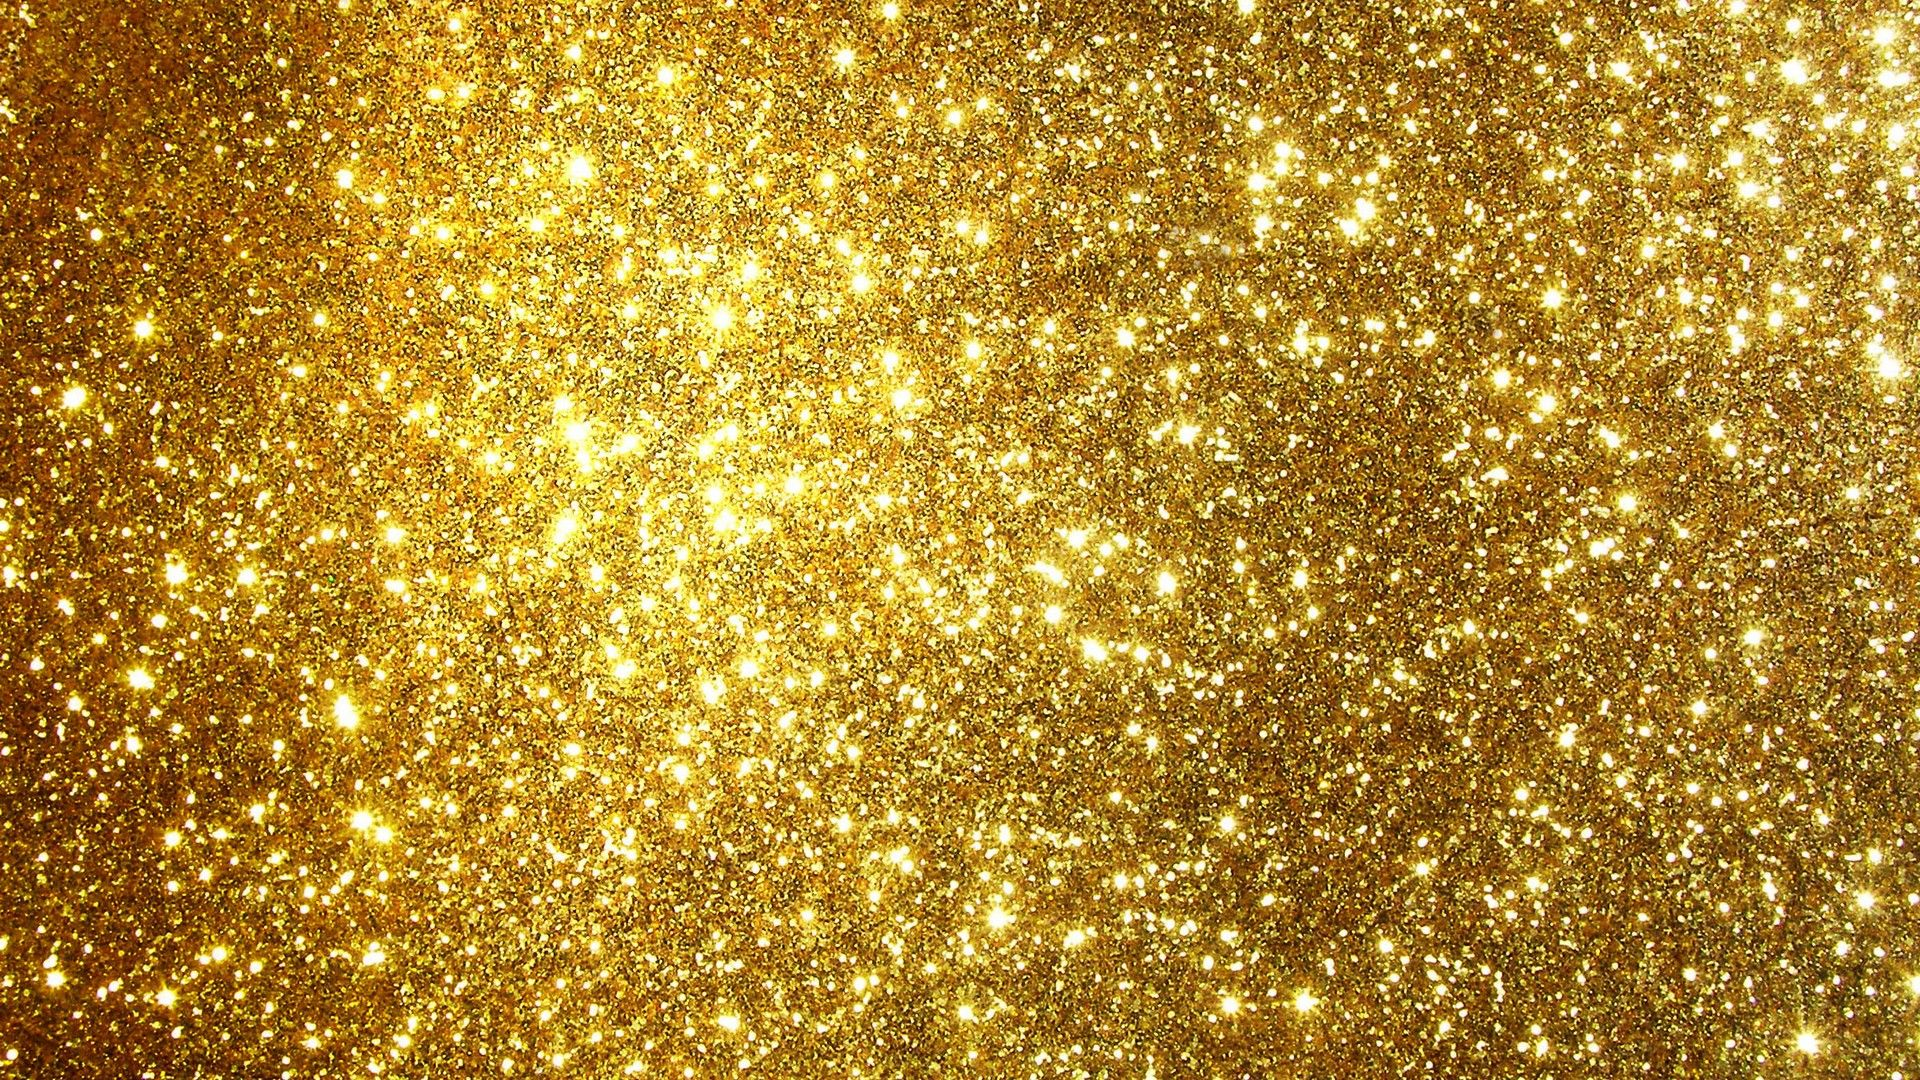 Gold Glitter Wallpaper HD Gold glitter wallpaper hd